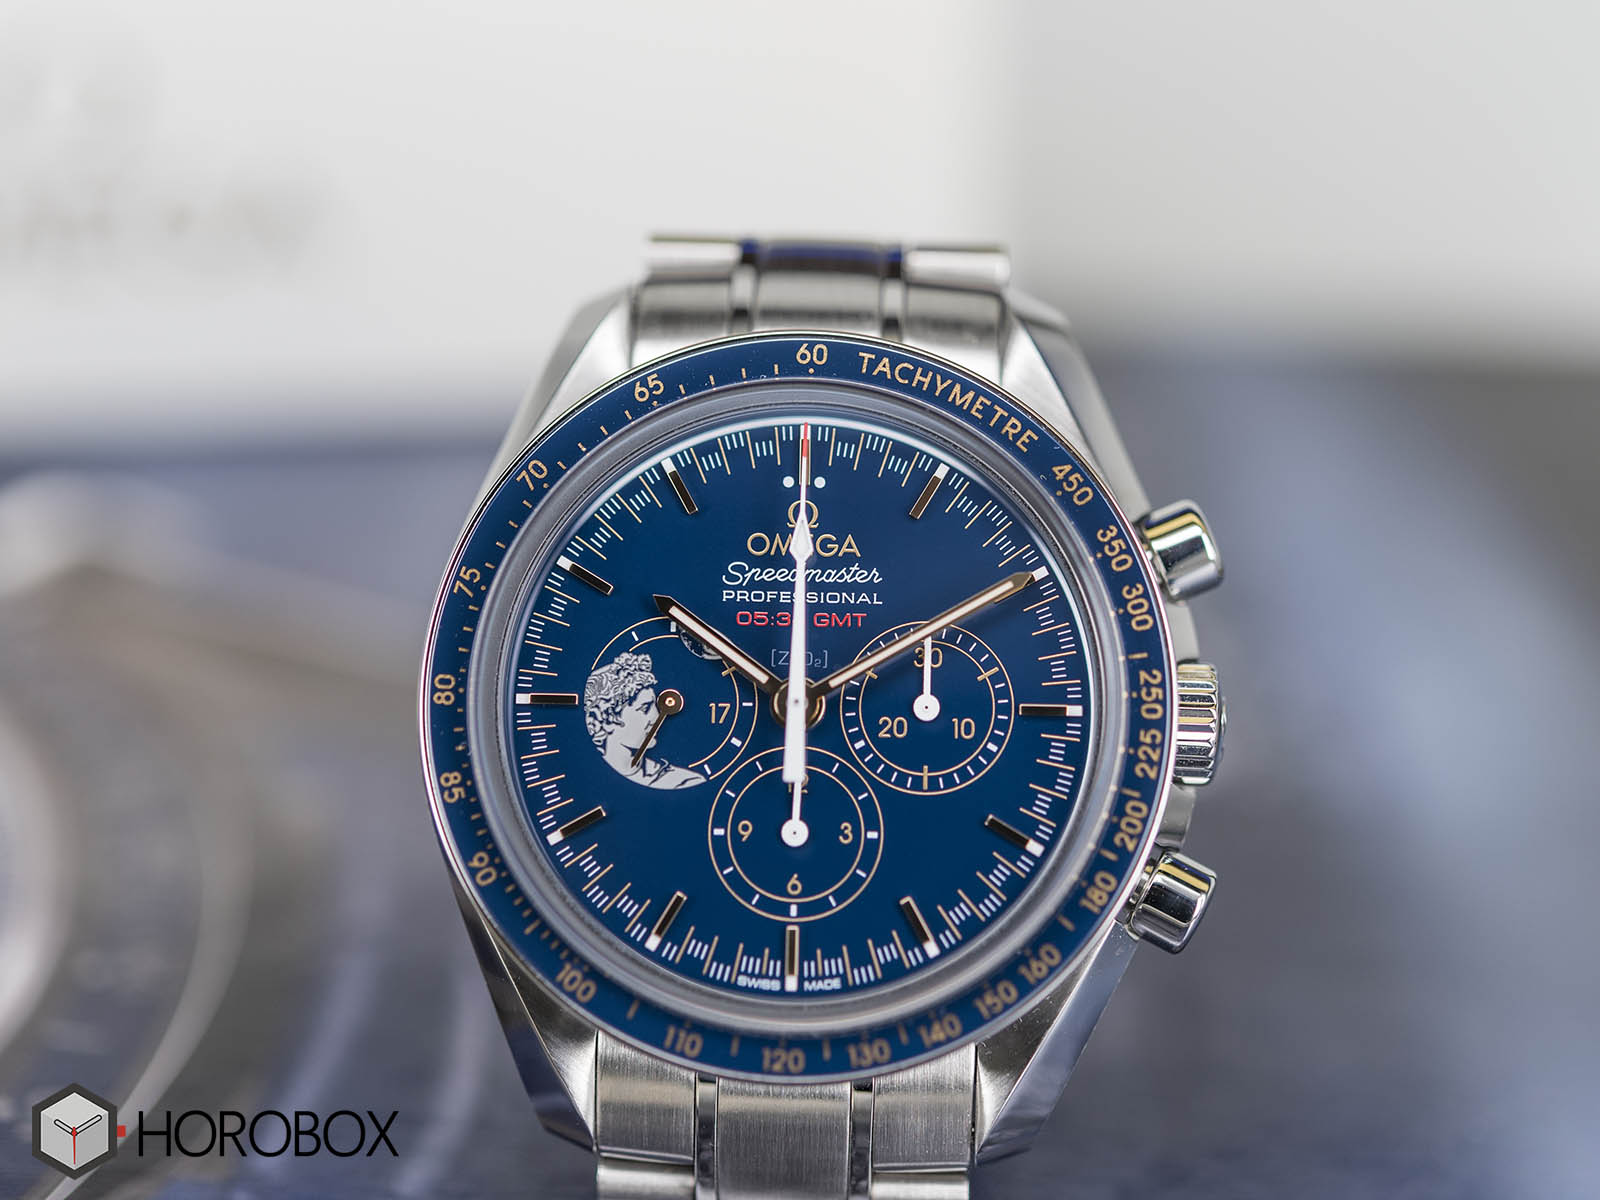 omega-speedmaster-apollo-moonwatch-anniversary-311-30-42-30-03-001-5-.jpg